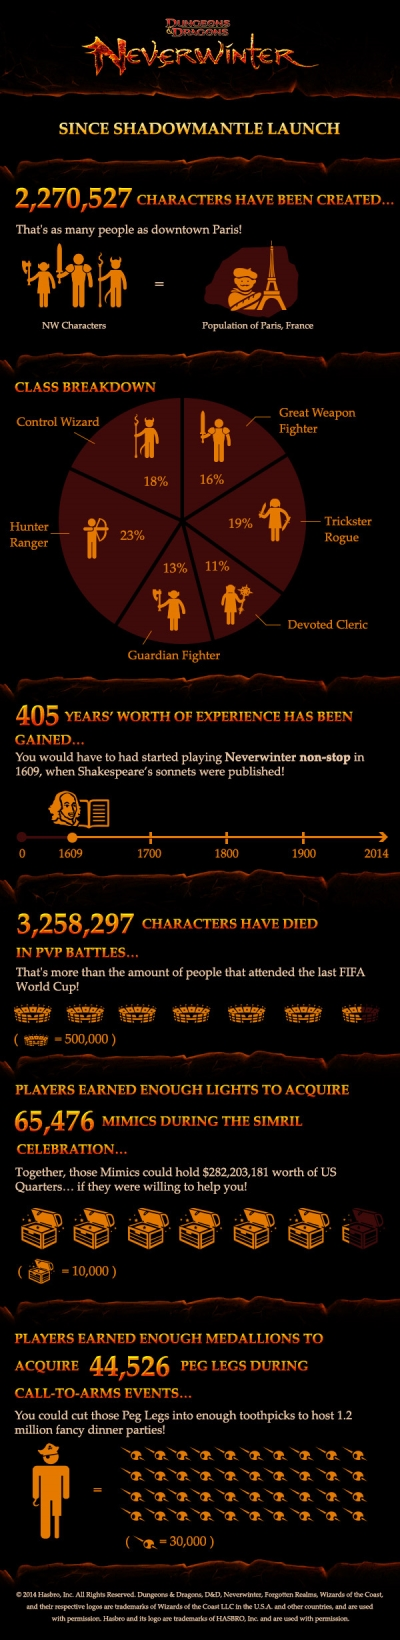 NeverWinter InfoGraphic SHadowmantle